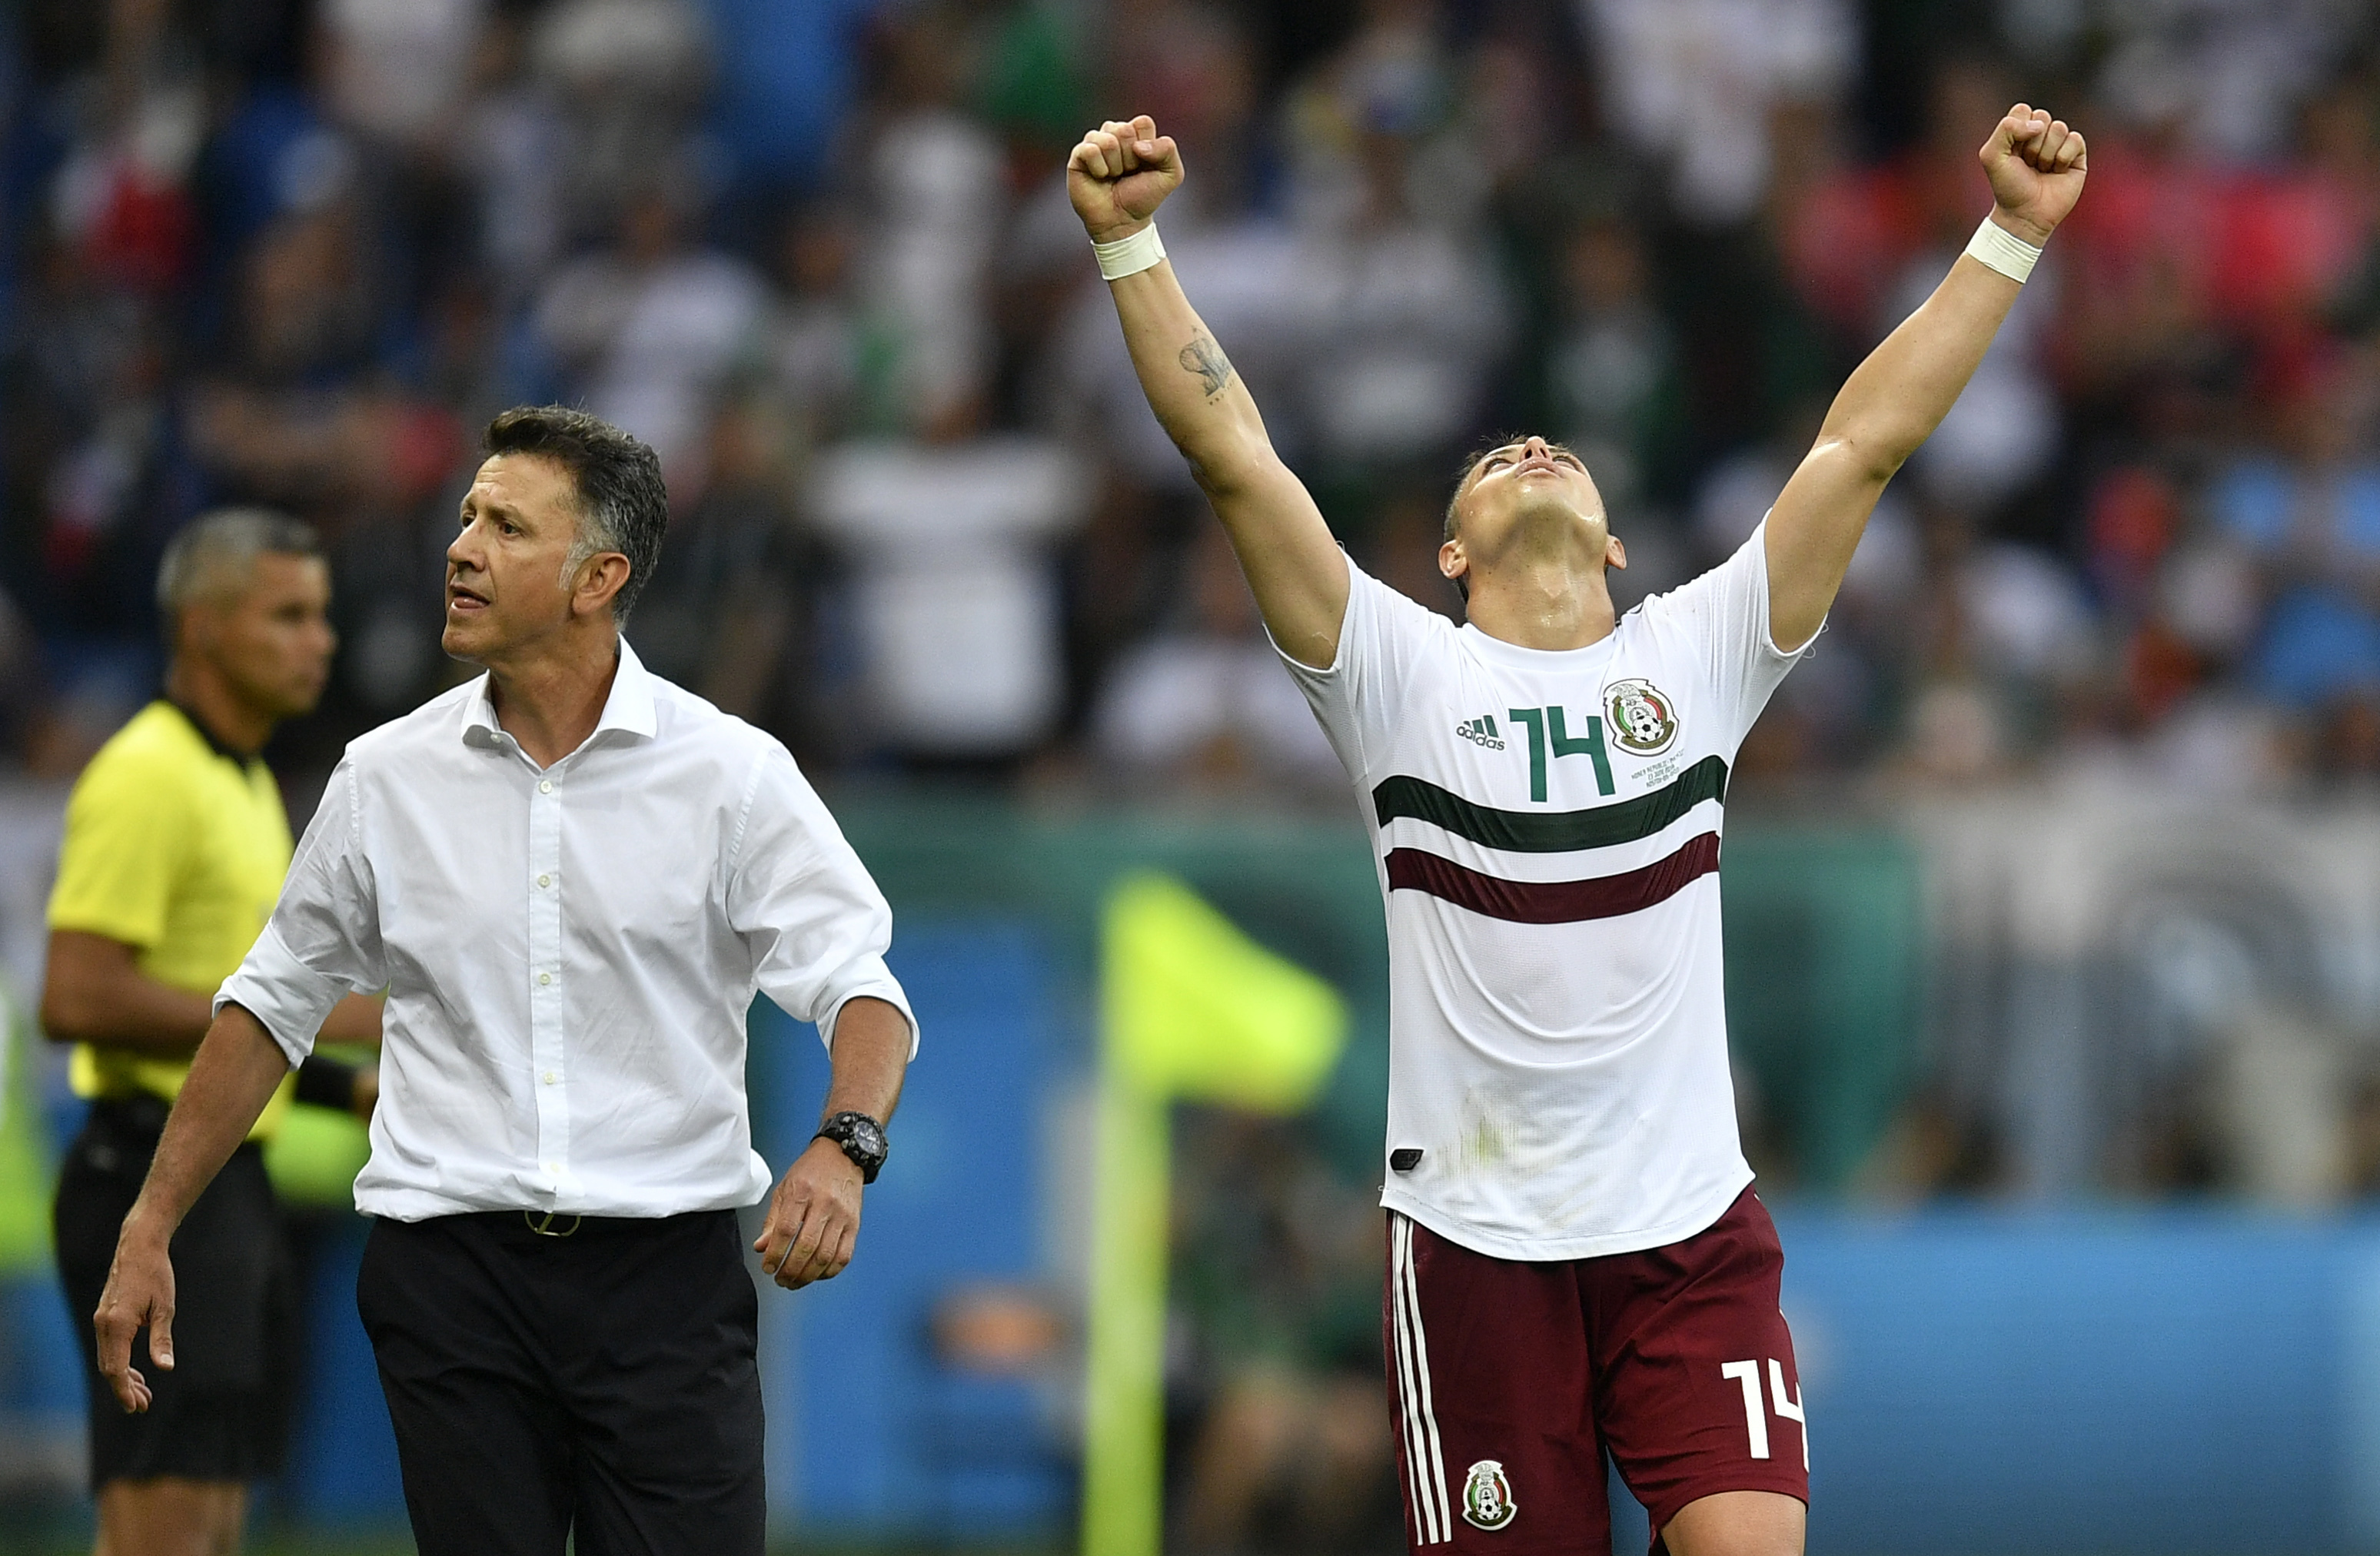 "<div class=""meta image-caption""><div class=""origin-logo origin-image none""><span>none</span></div><span class=""caption-text"">Mexico's Javier Hernandez celebrates beside Mexico head coach Juan Carlos Osorio at the end of the group F match between Mexico and South Korea in the Rostov Arena on June 23. (Martin Meissner/AP Photo)</span></div>"